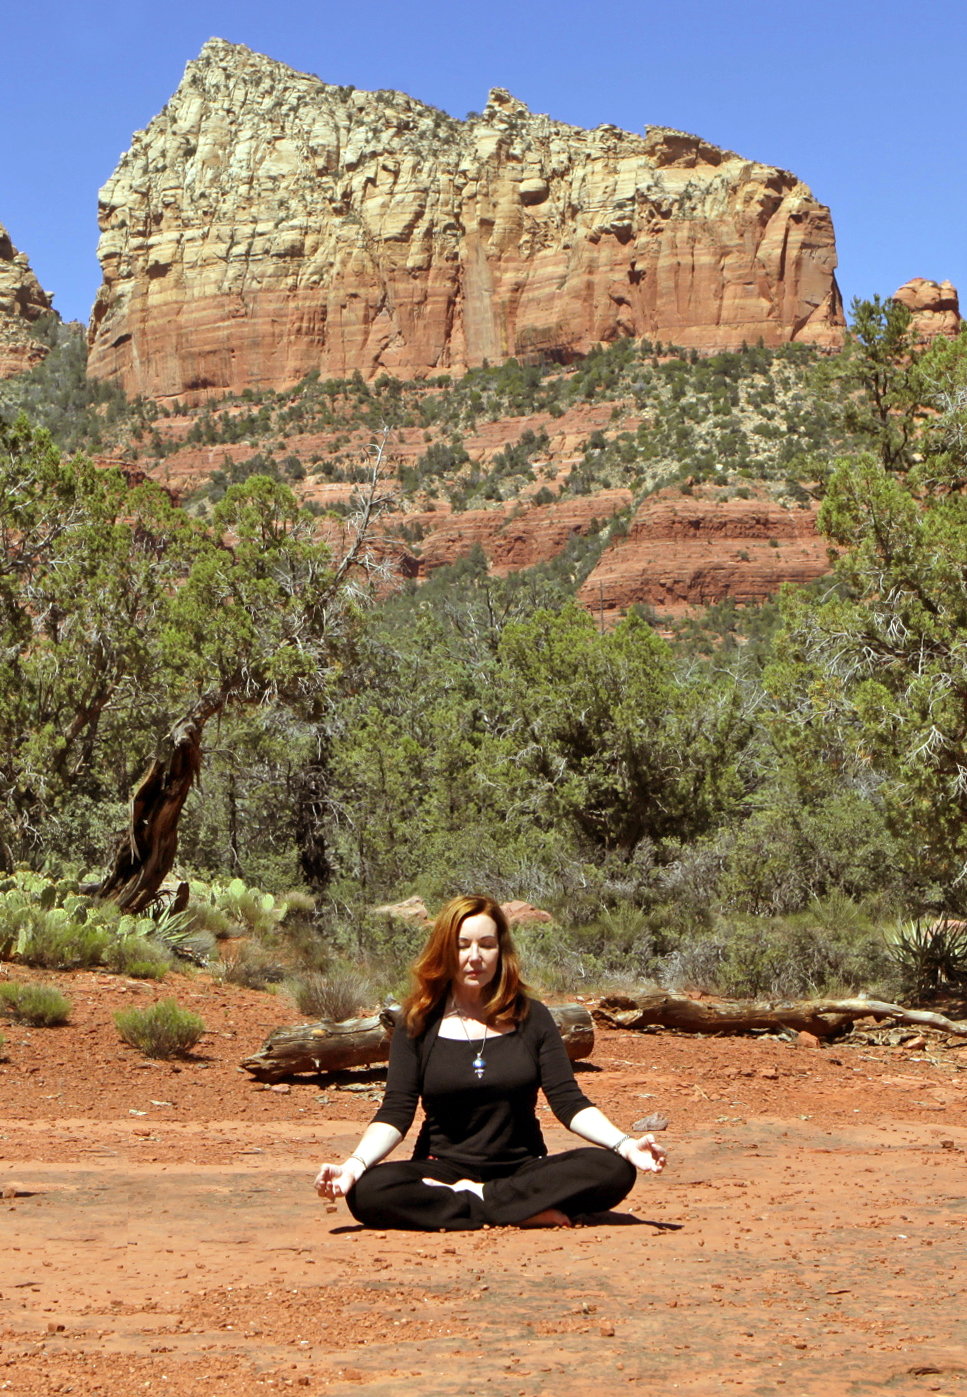 Small Business Snapshot: Sedona Soul Adventures